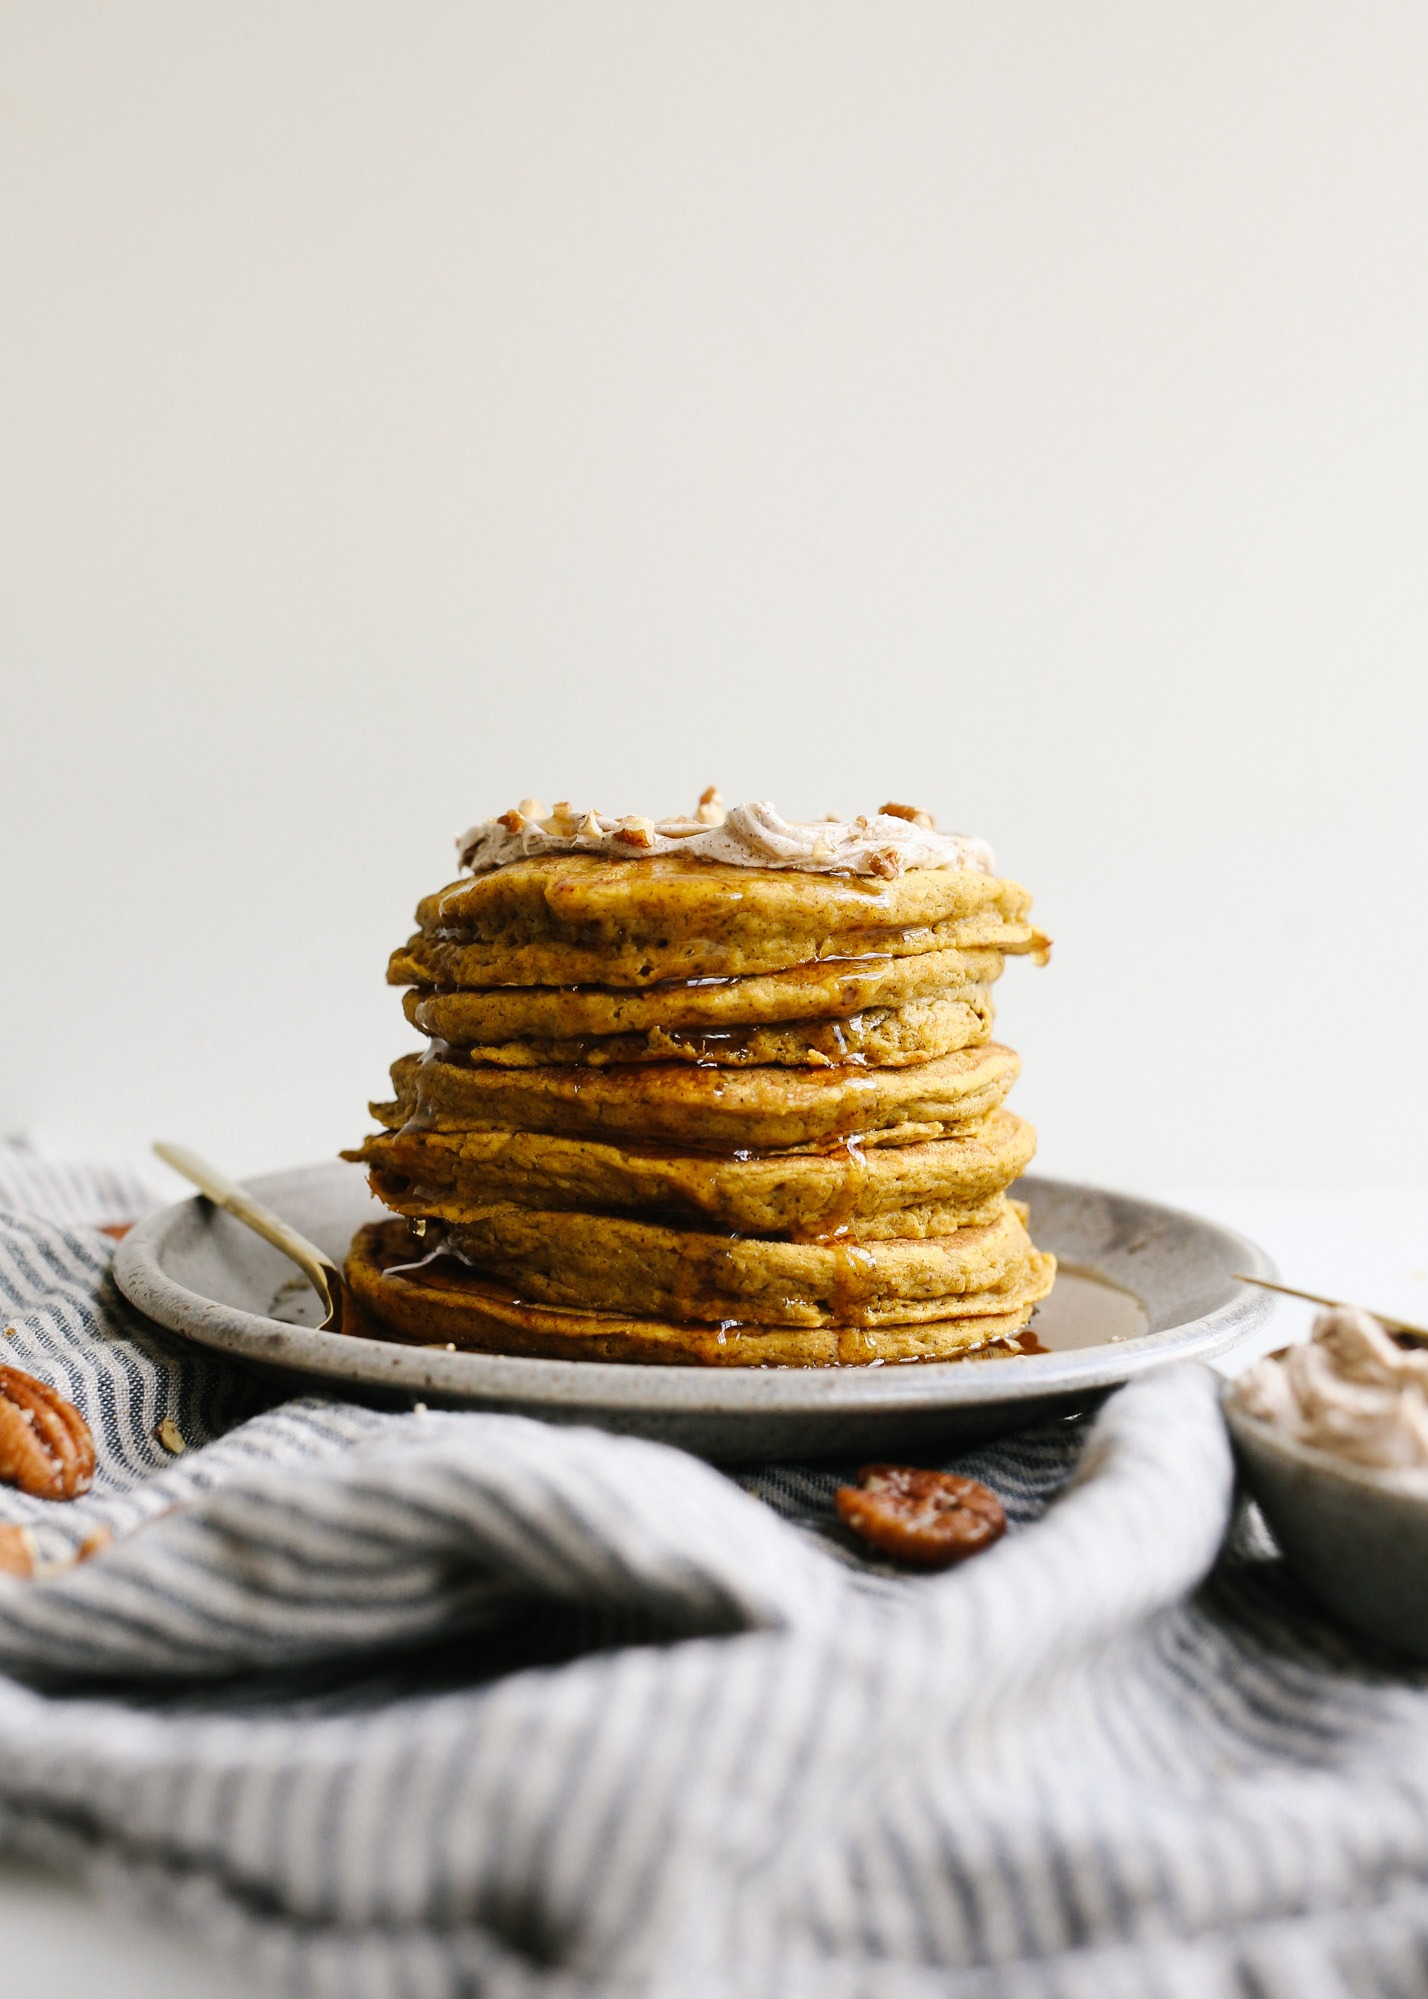 Pumpkin Pancakes with Whipped Cinnamon Butter by Wood and Spoon blog by Kate Wood. These are fluffy pancakes flavored with cinnamon and pumpkin puree. The pancakes are soft and tender and the butter is barely sweetened and scented with spice! Learn how simple these breakfast treats are to make this fall on thewoodandspoon.com